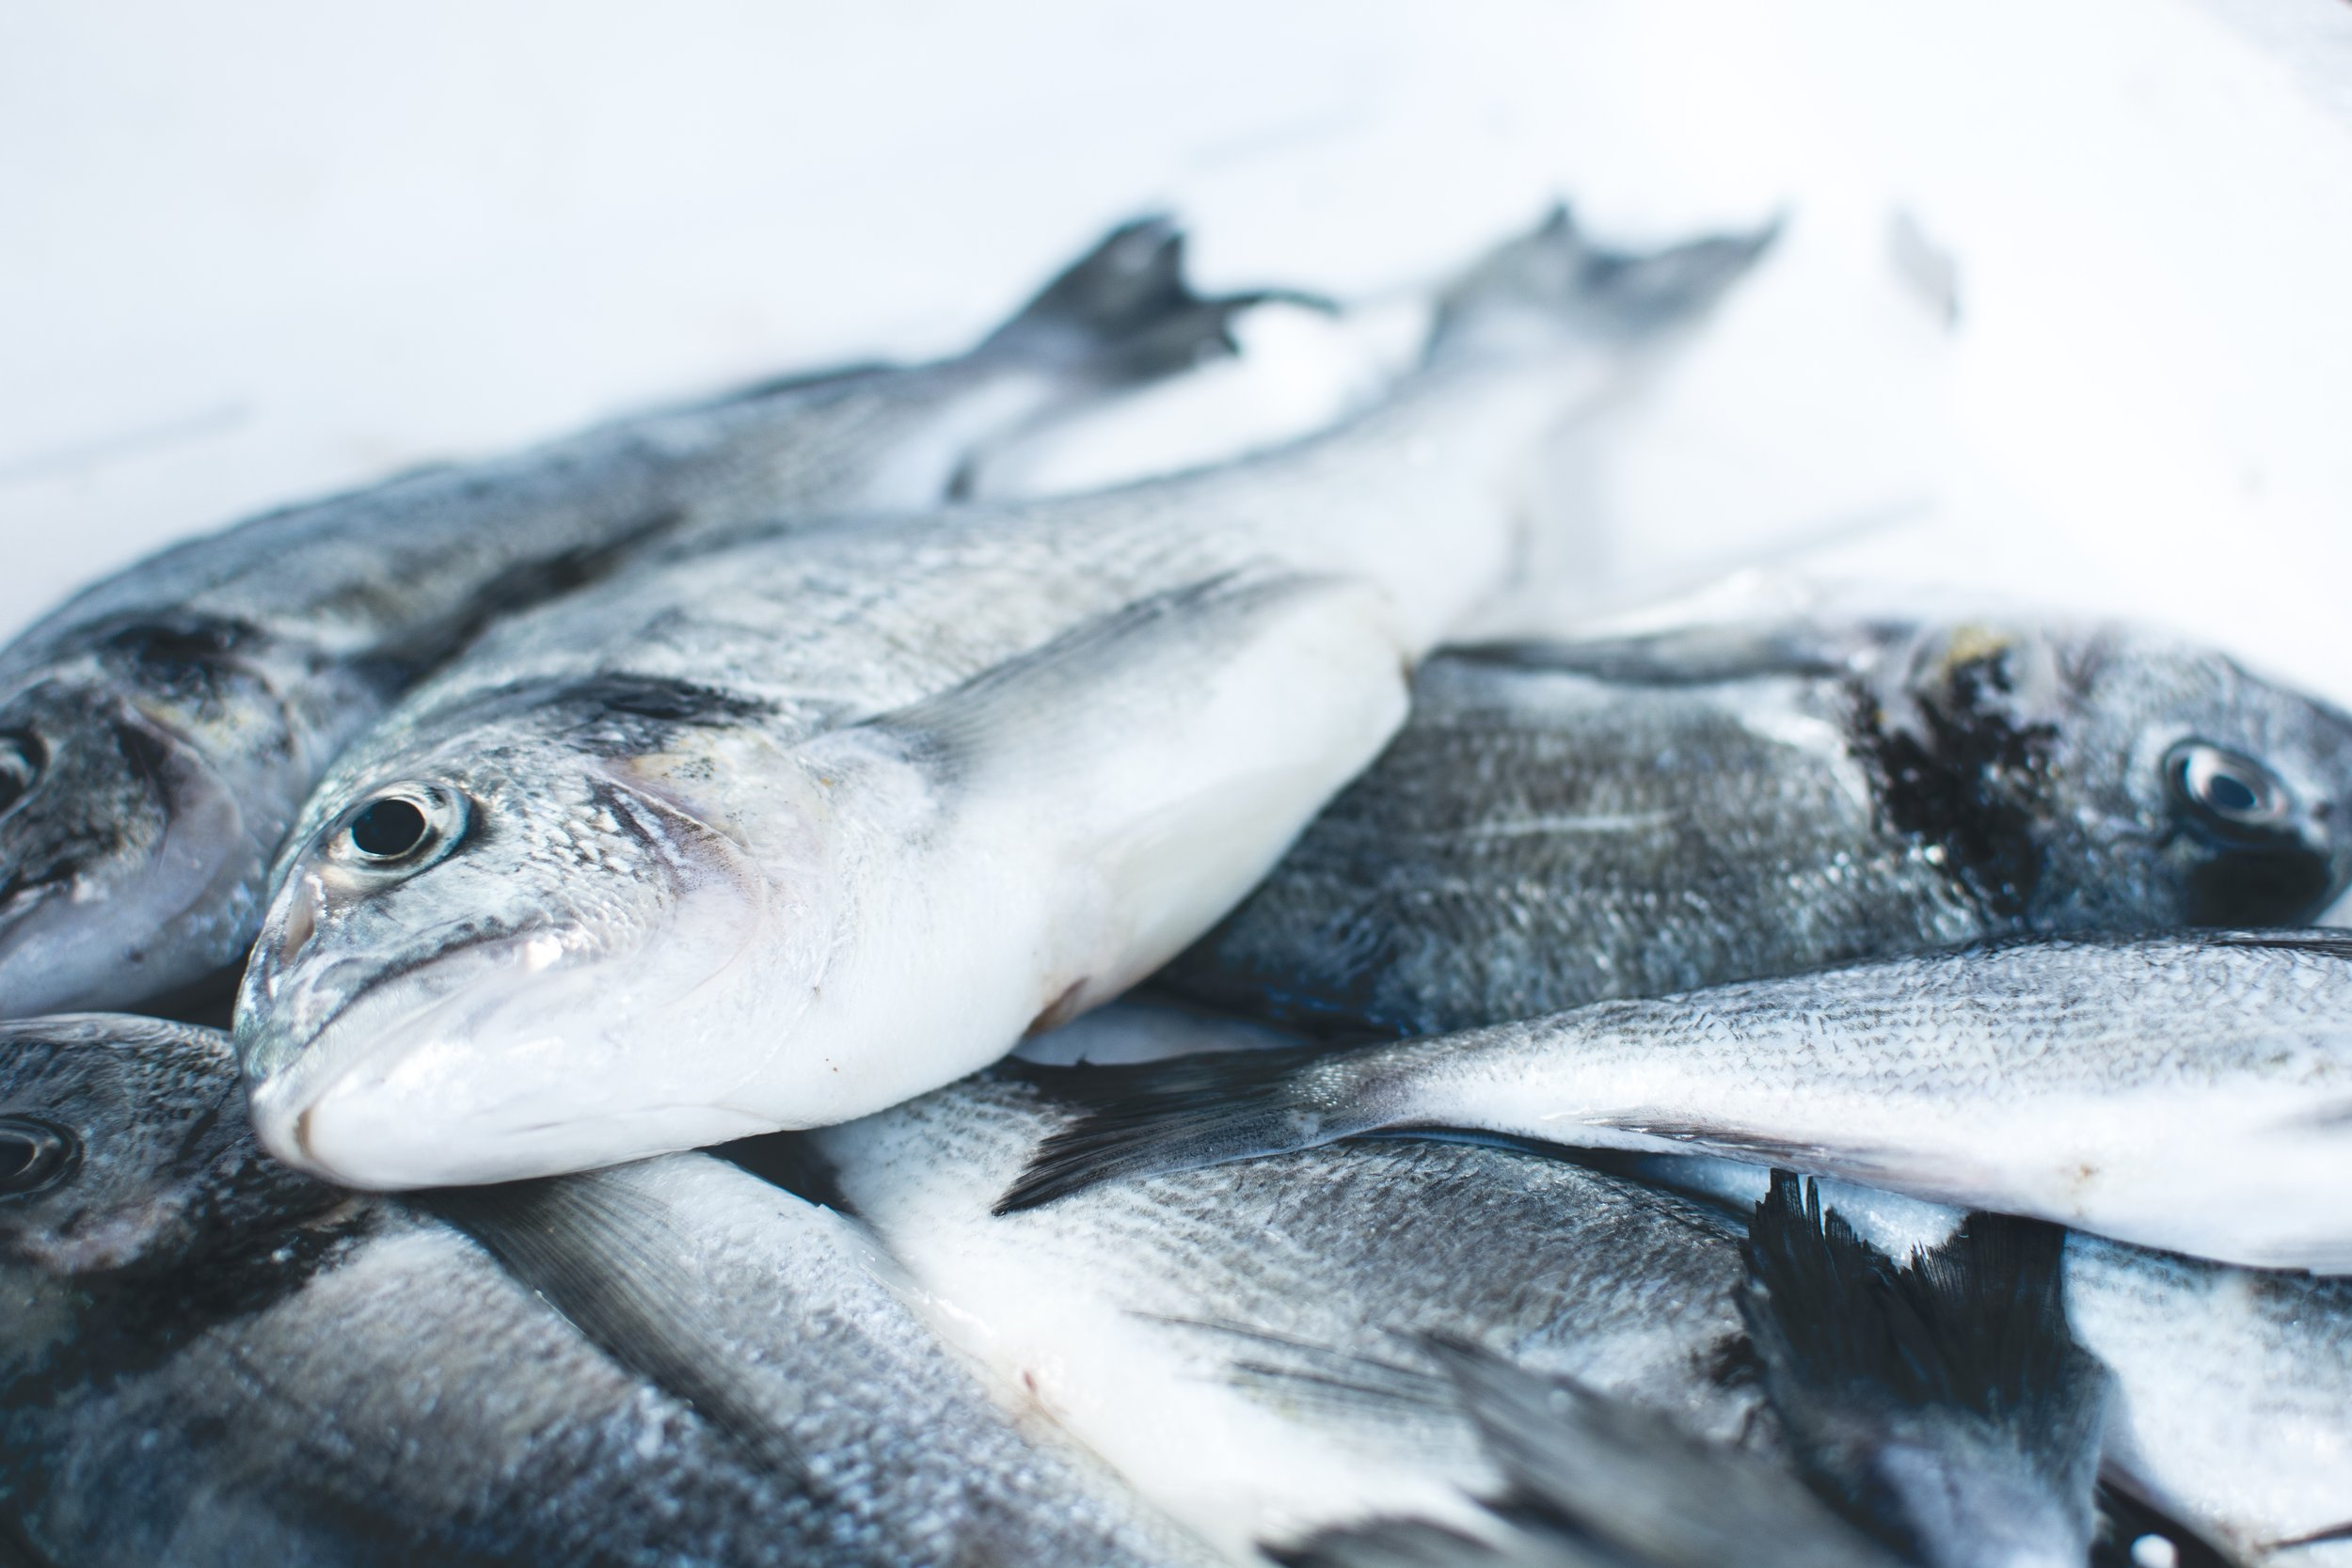 Frozen fish are more likely to have peak freshness locked in, along with being more environmentally friendly.